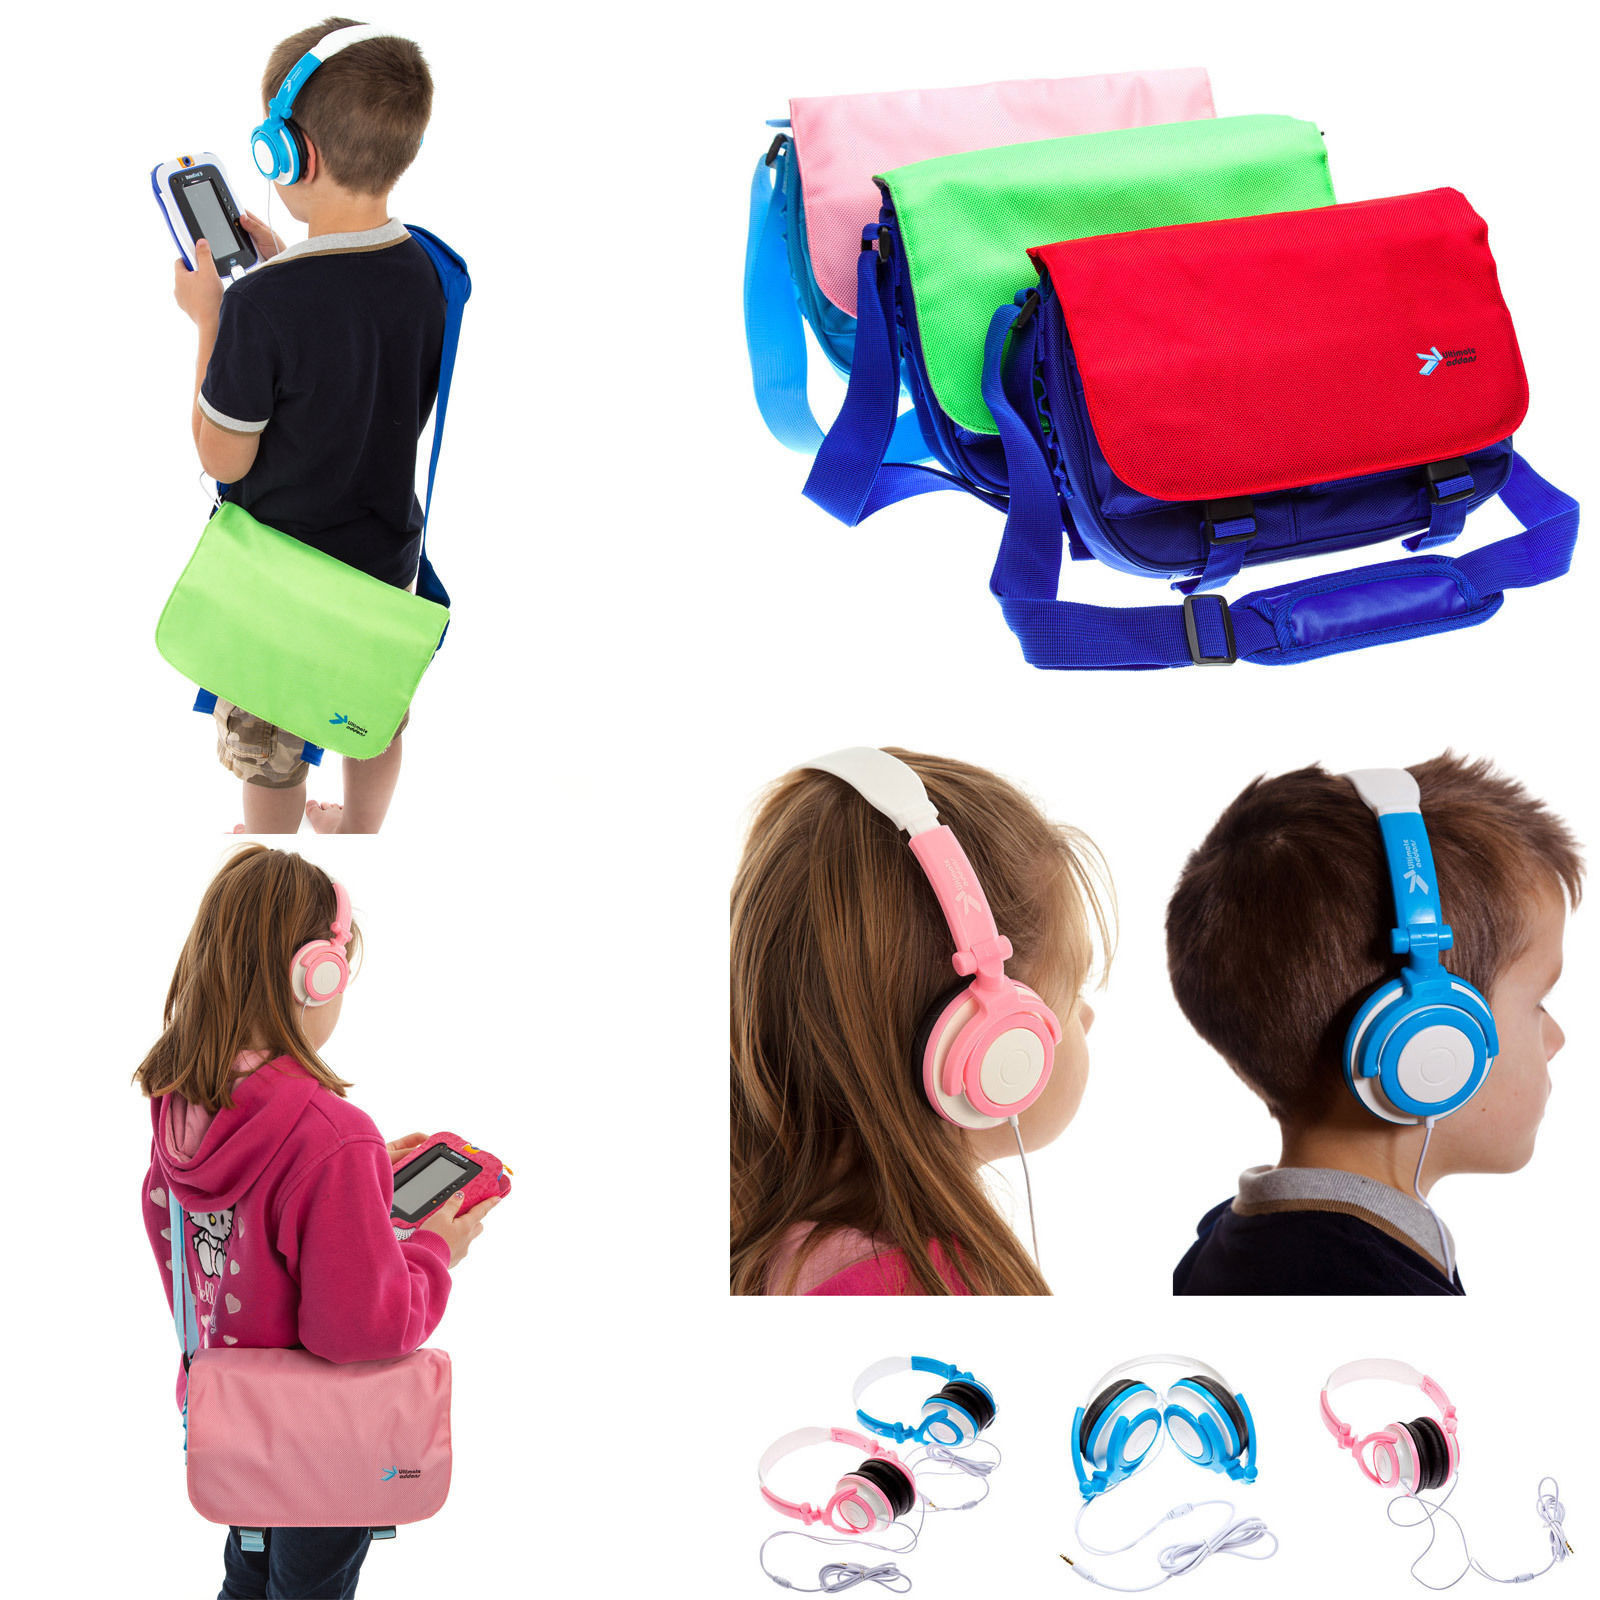 Image result for school headphones